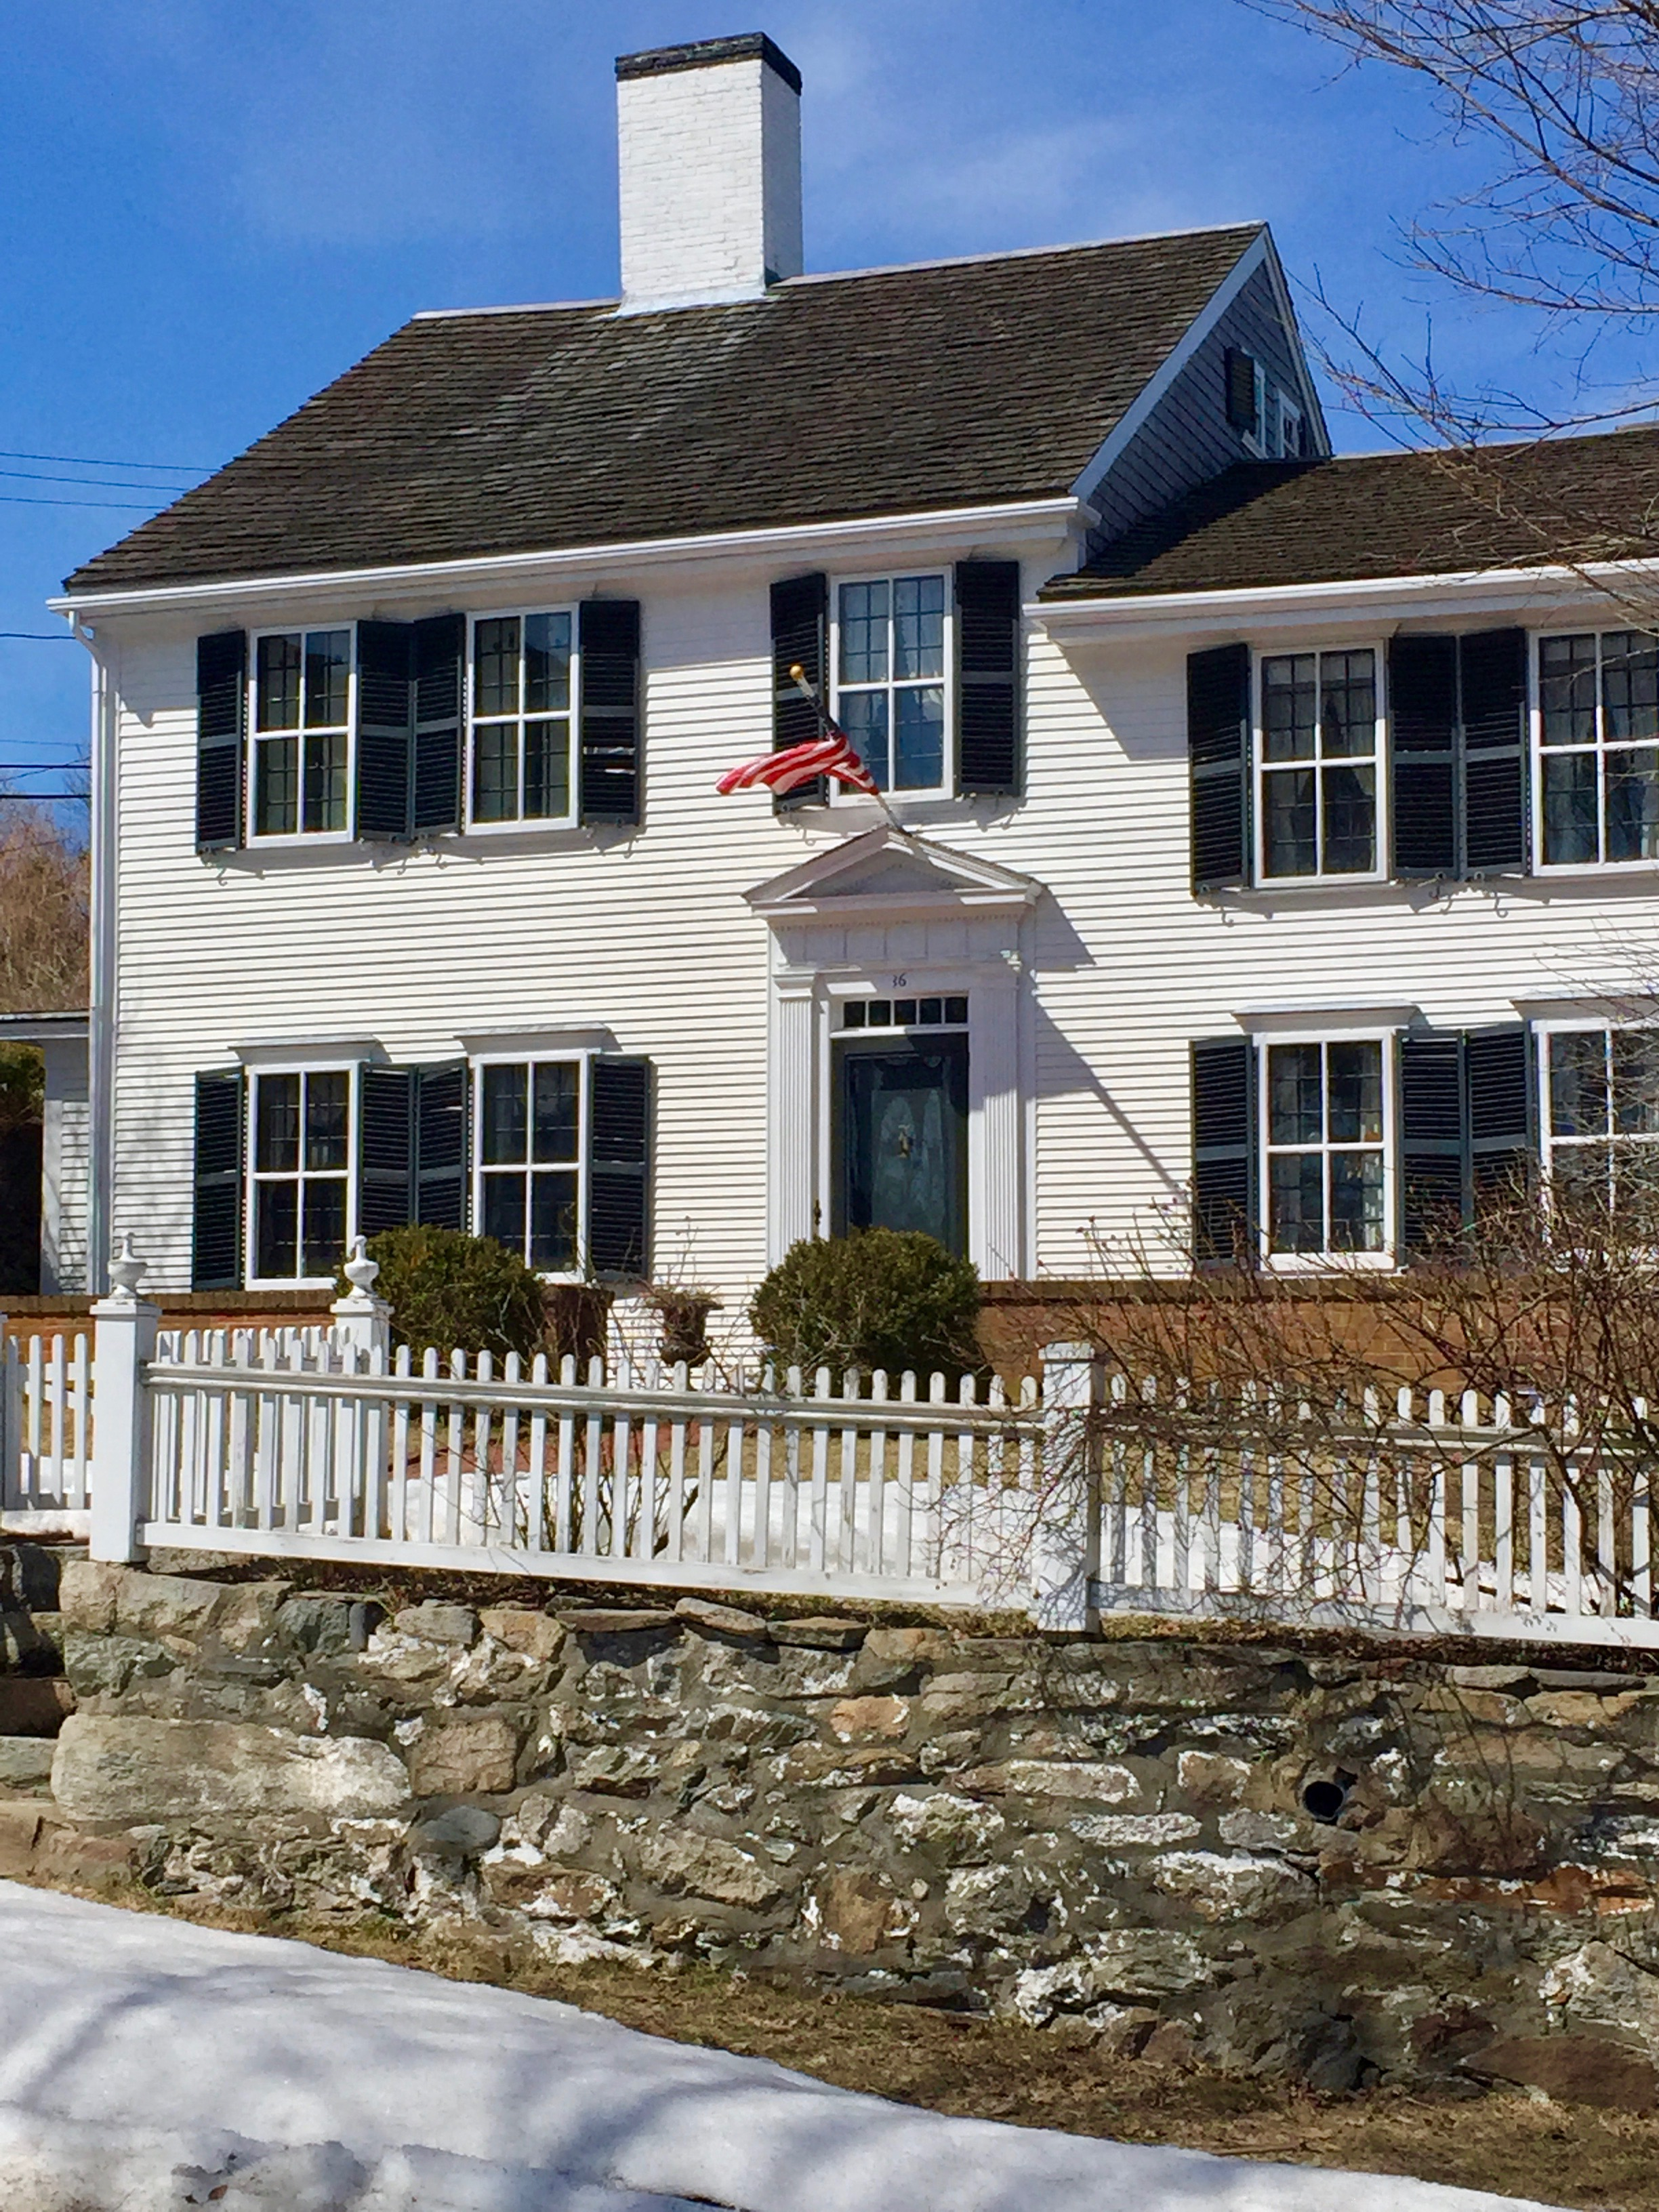 white home green shutters green door white center chimney with black cap Plymouth MA.jpg